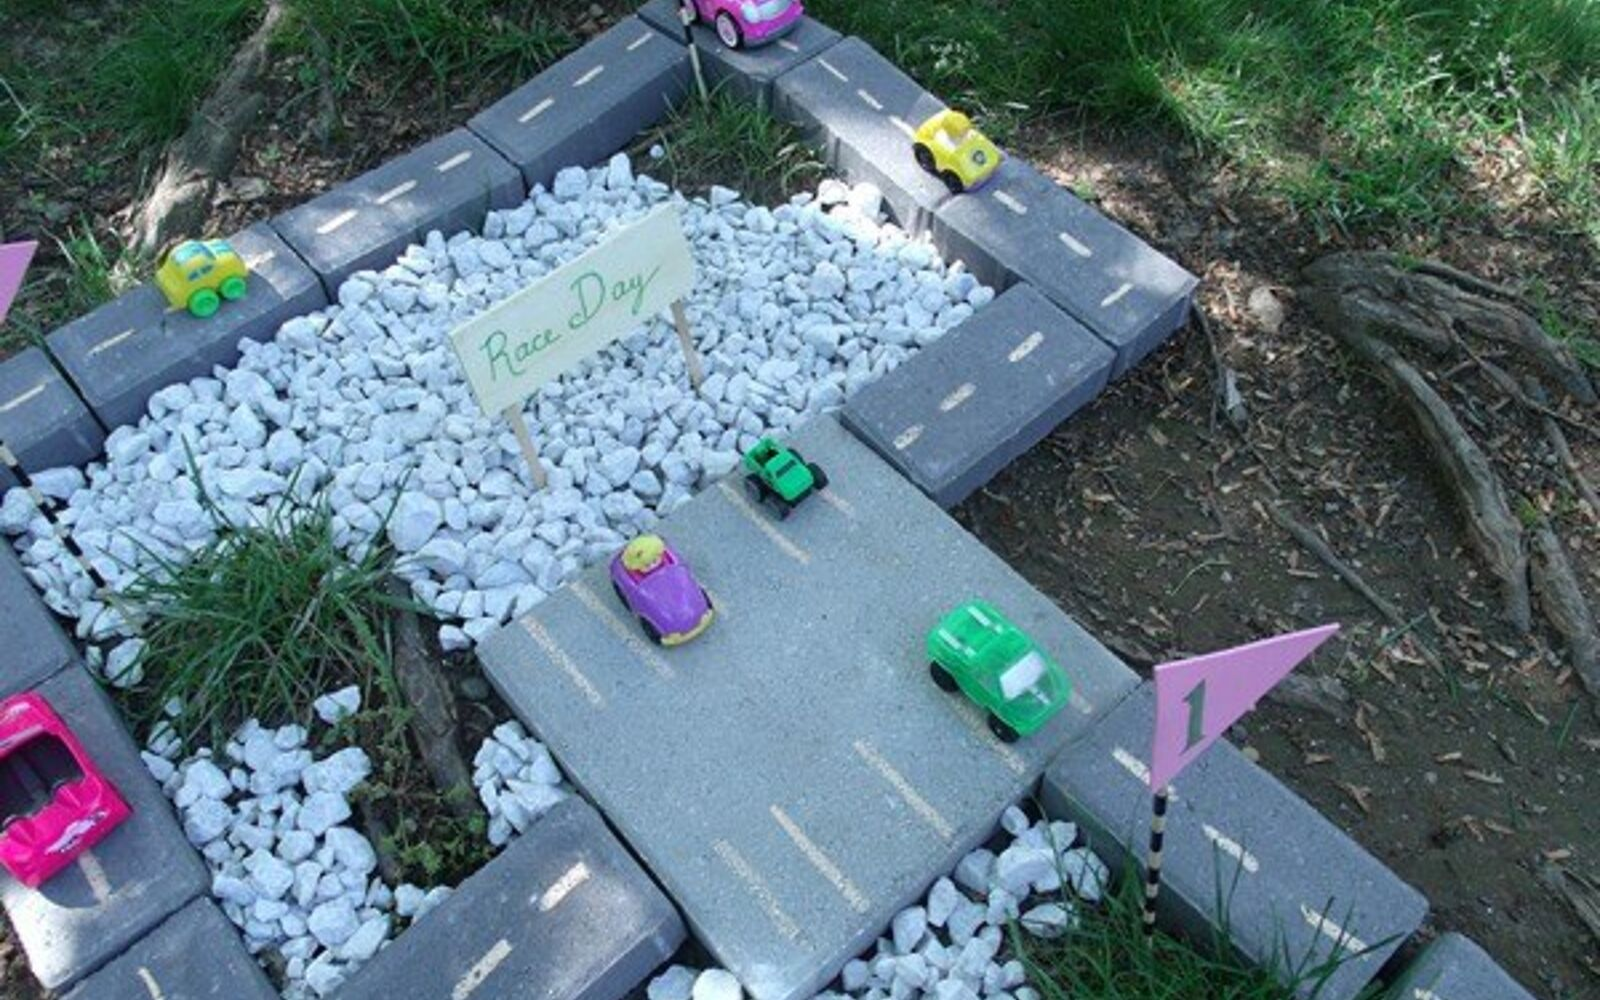 s upgrade your backyard with these 30 clever ideas, Create a playful racetrack from brick pavers